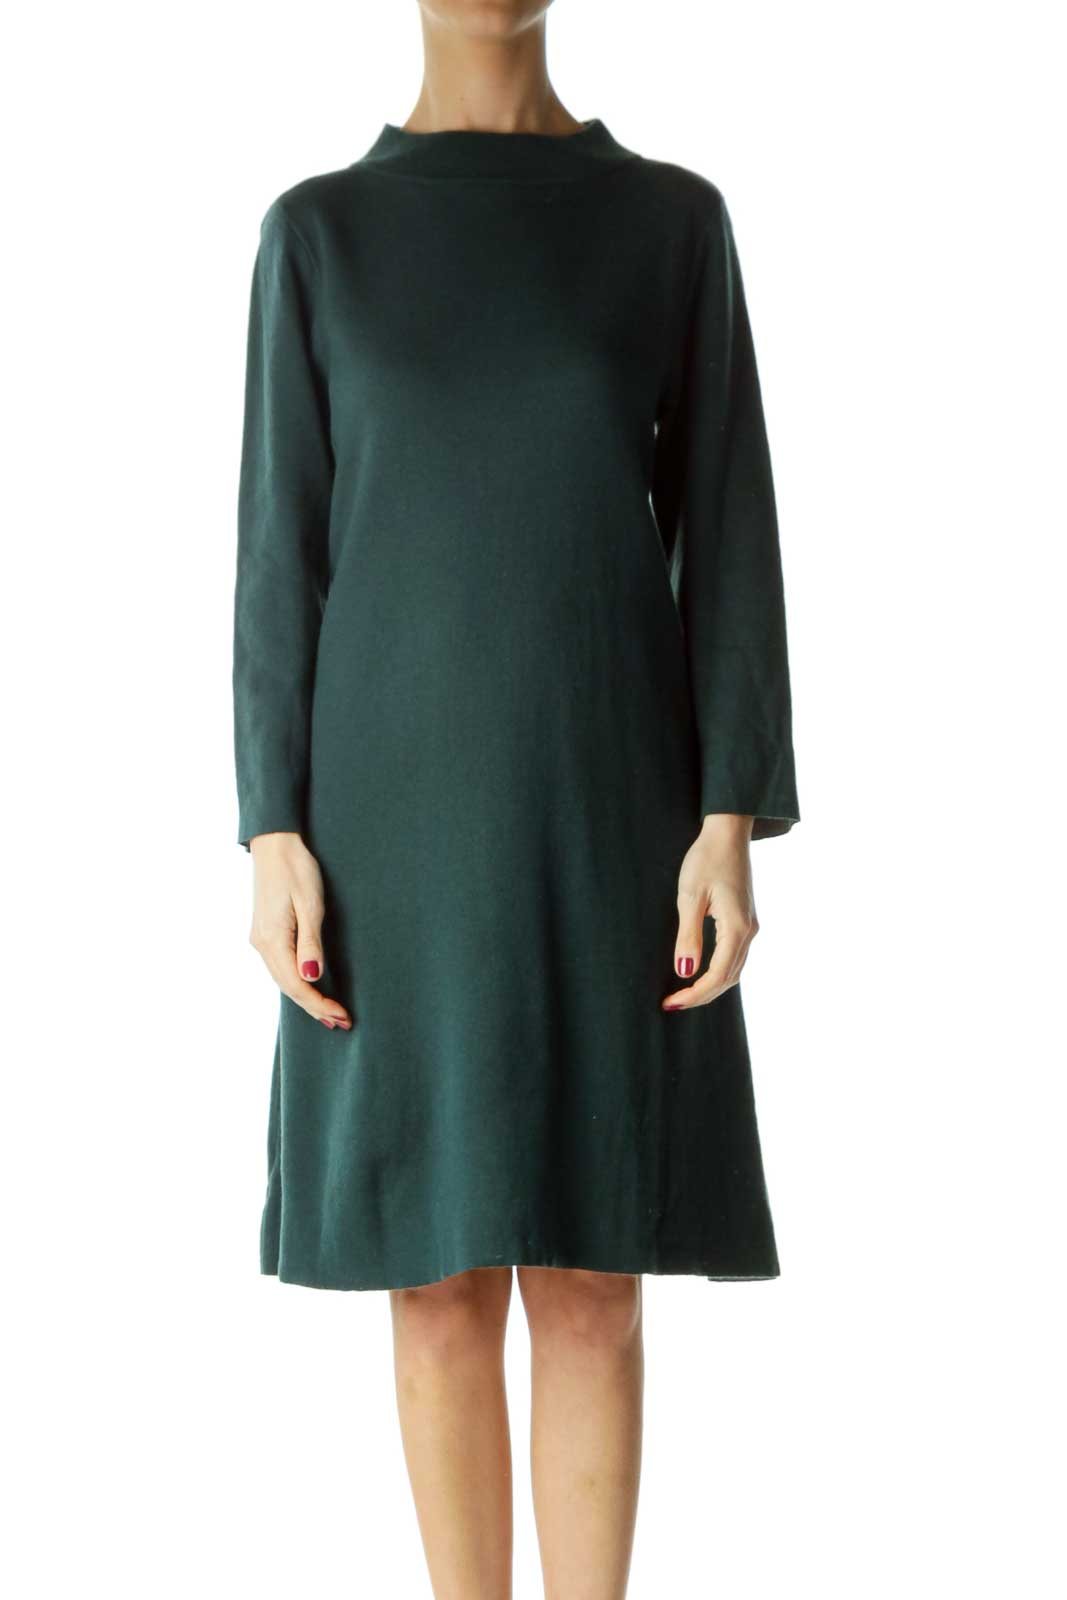 Green High Neck Long Sleeve Knit Dress